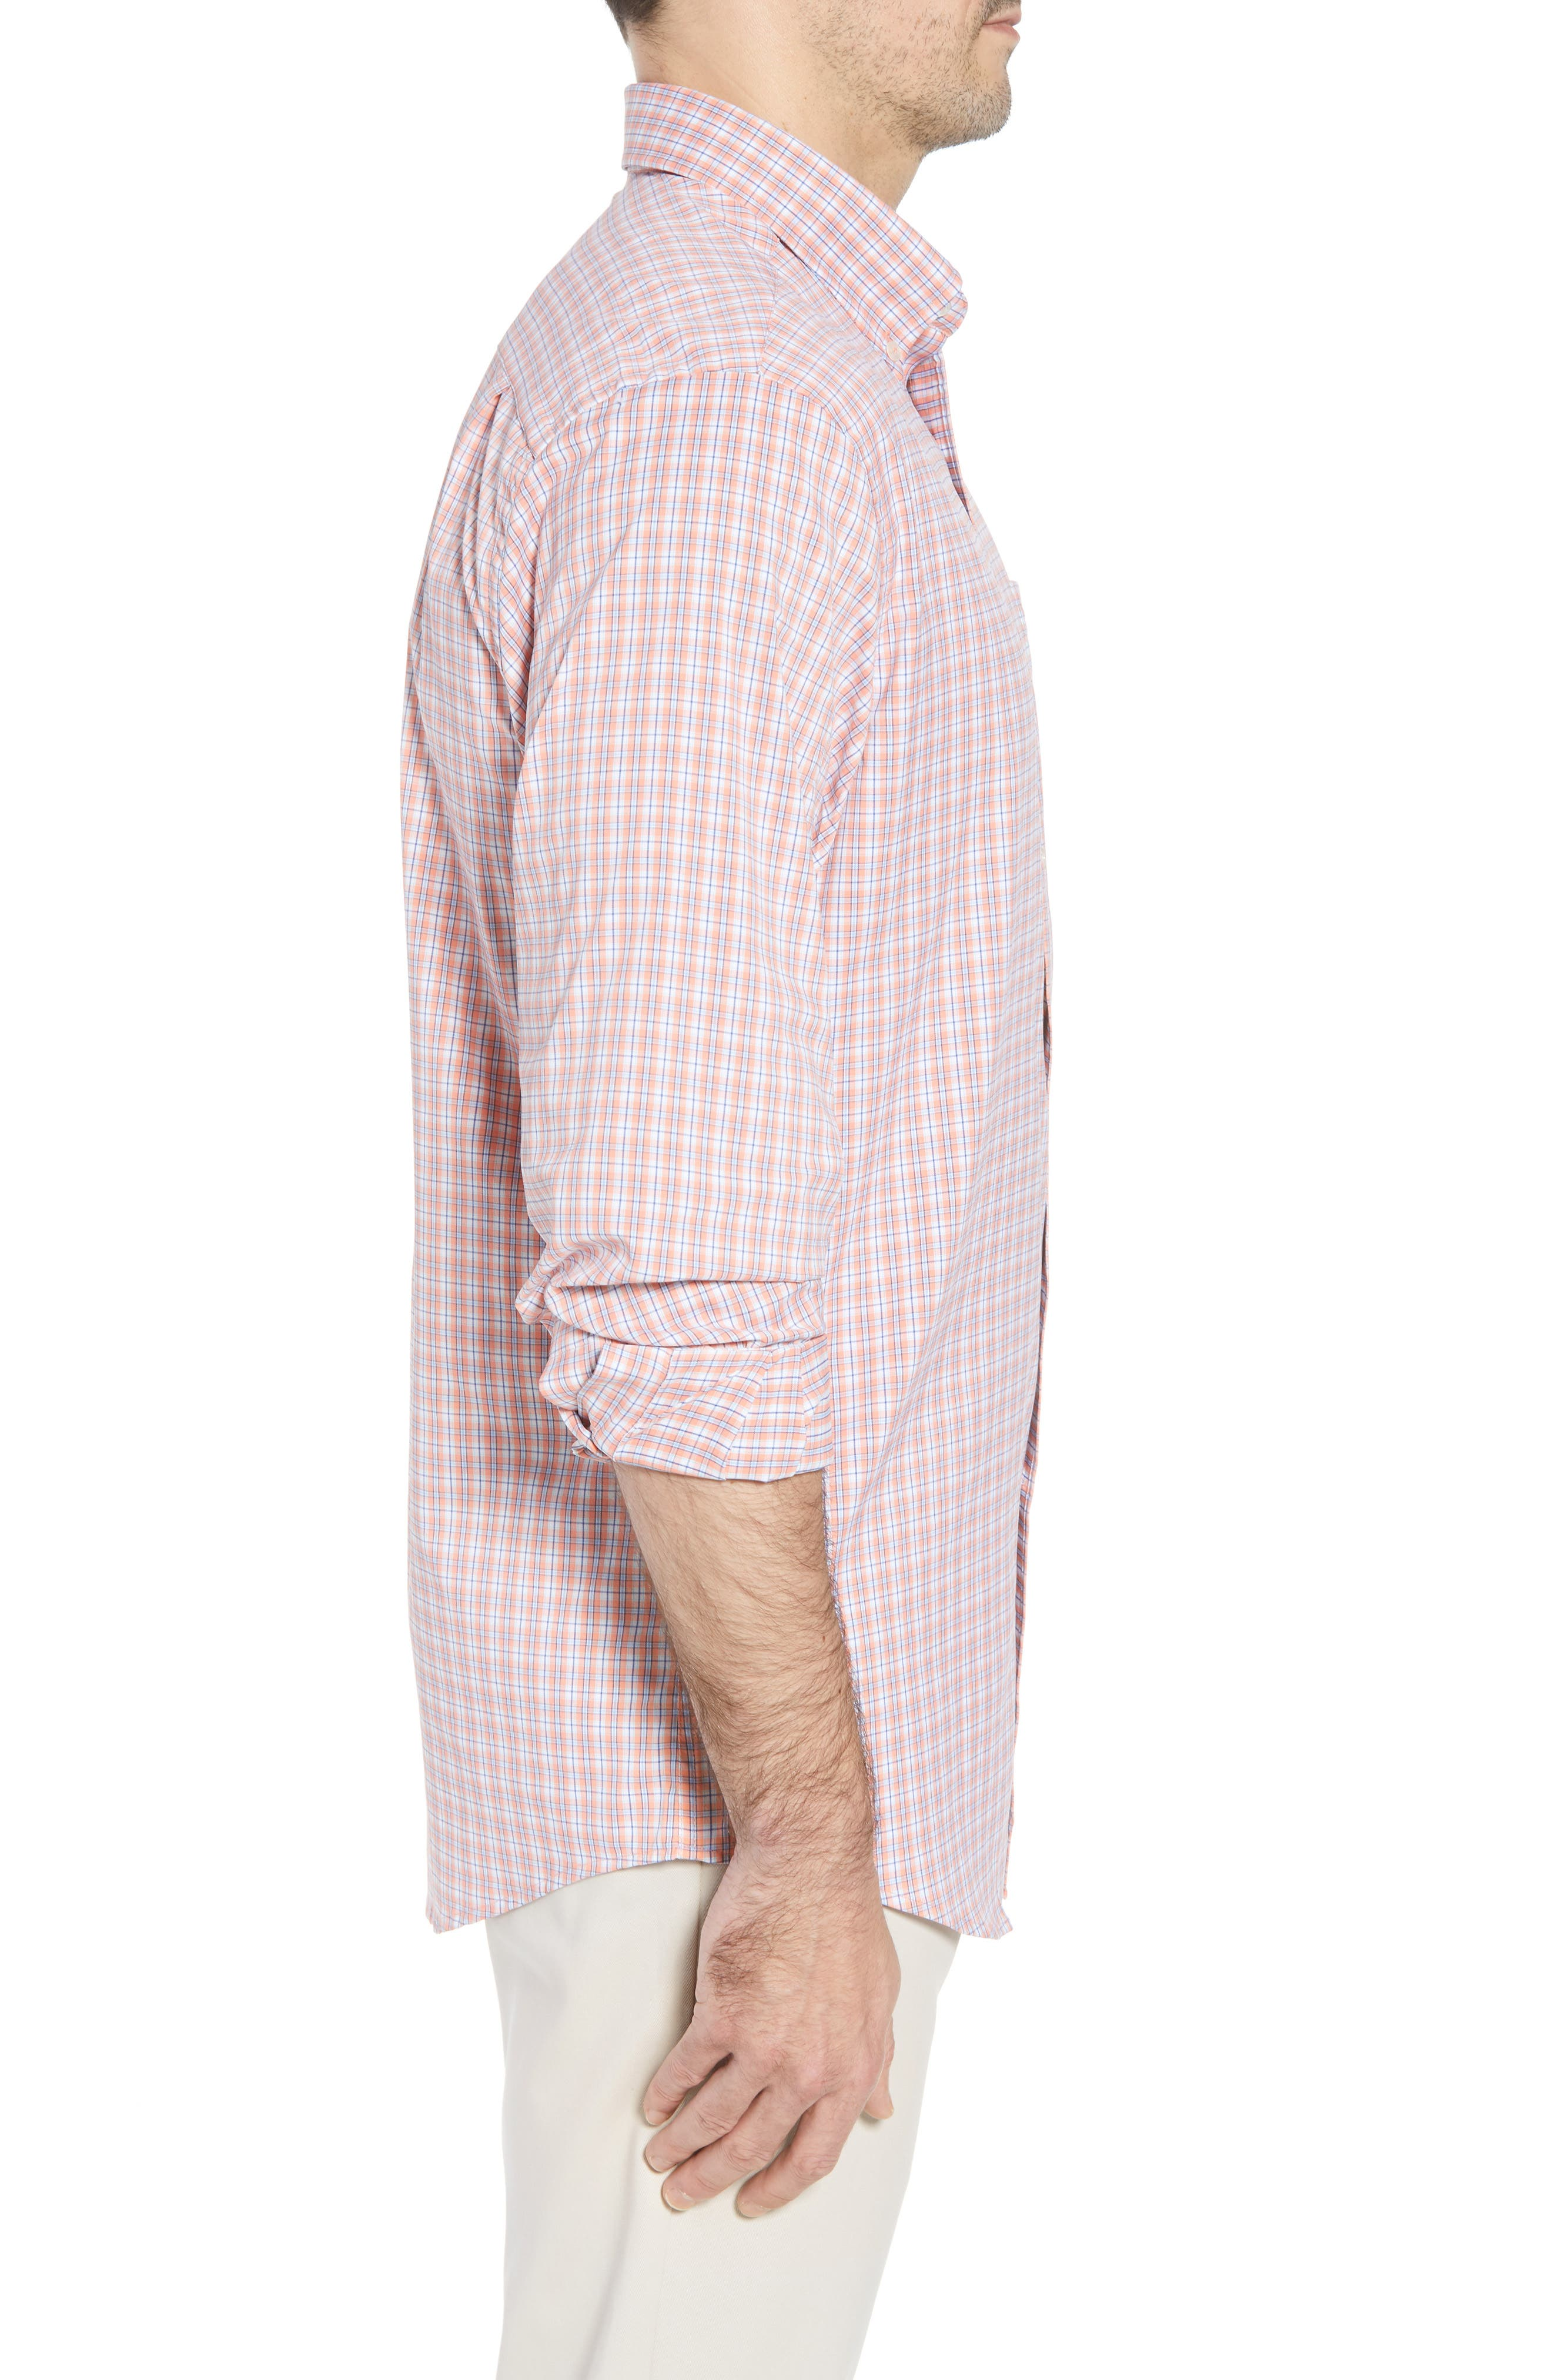 Grand Turk Regular Fit Stretch Plaid Sport Shirt,                             Alternate thumbnail 4, color,                             Nectar Coral